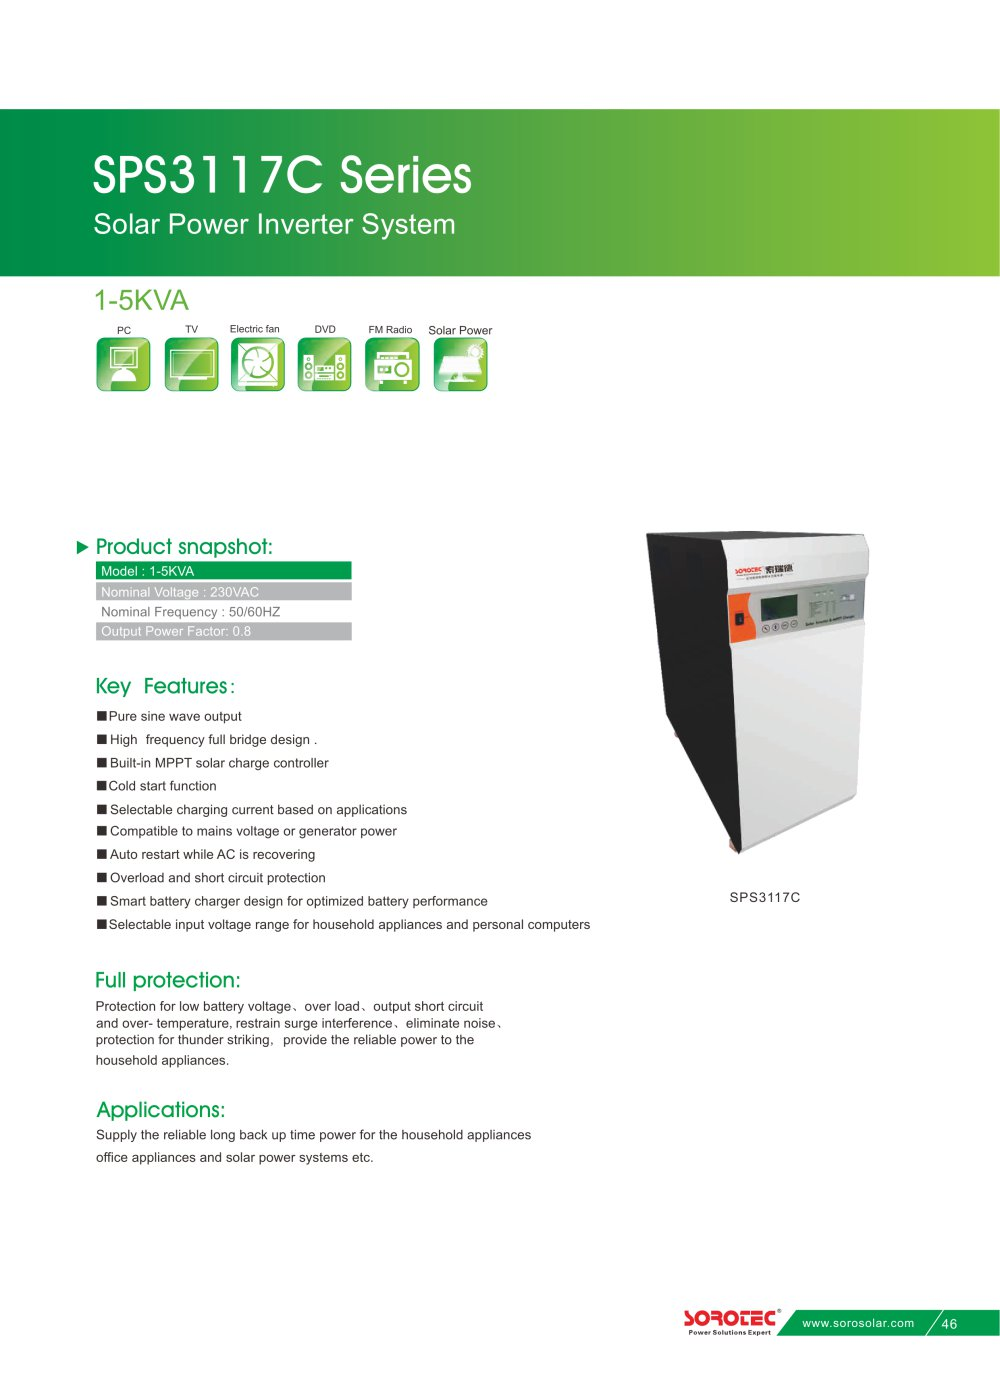 Solar Power Inverter System Sps3117c 1 5kva Shenzhen Soro And Battery Low Voltage Protection Short Circuit Protectionin Car 3 Pages